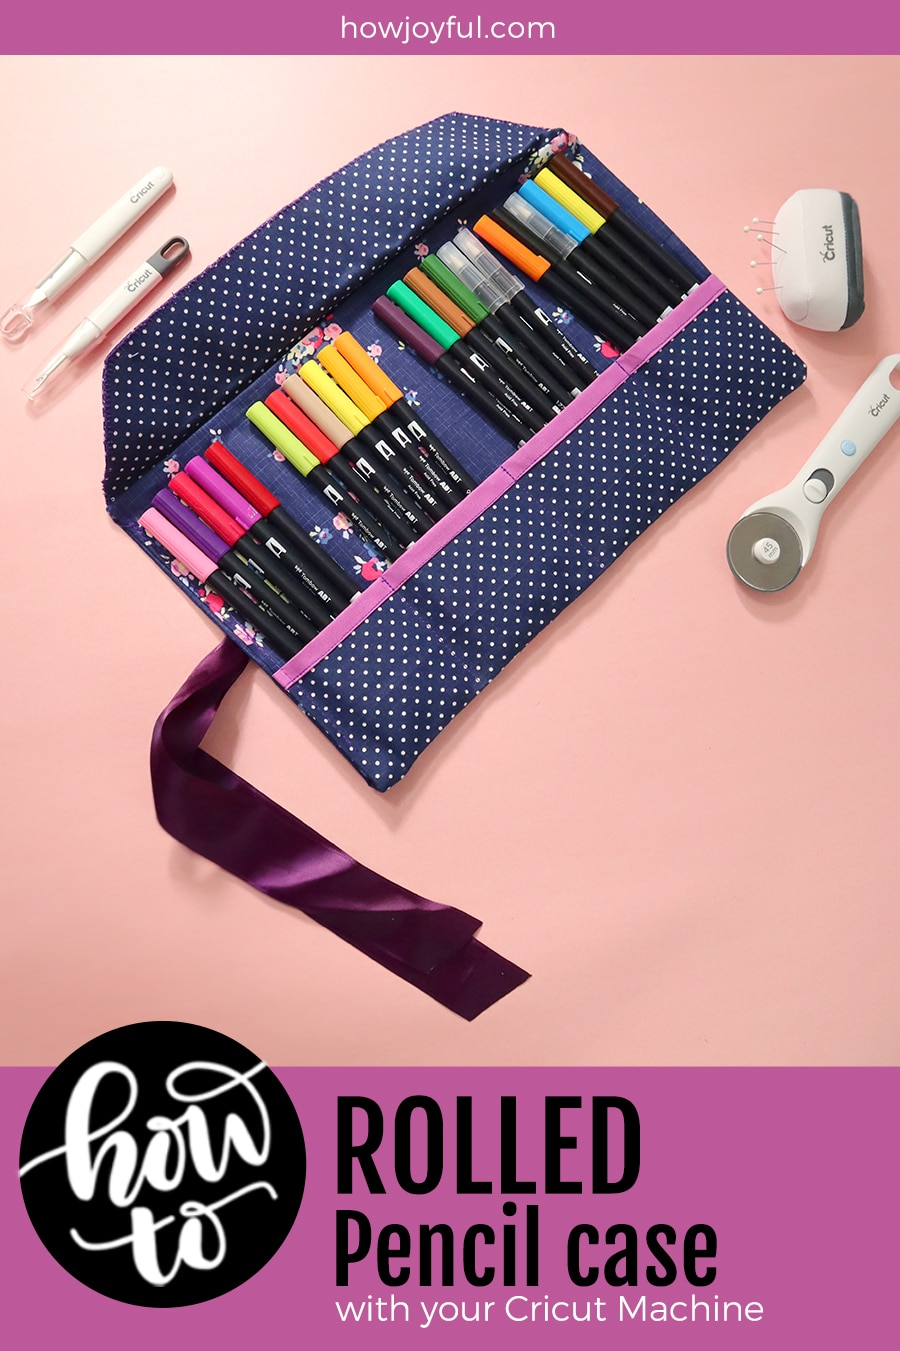 rolled pencil case